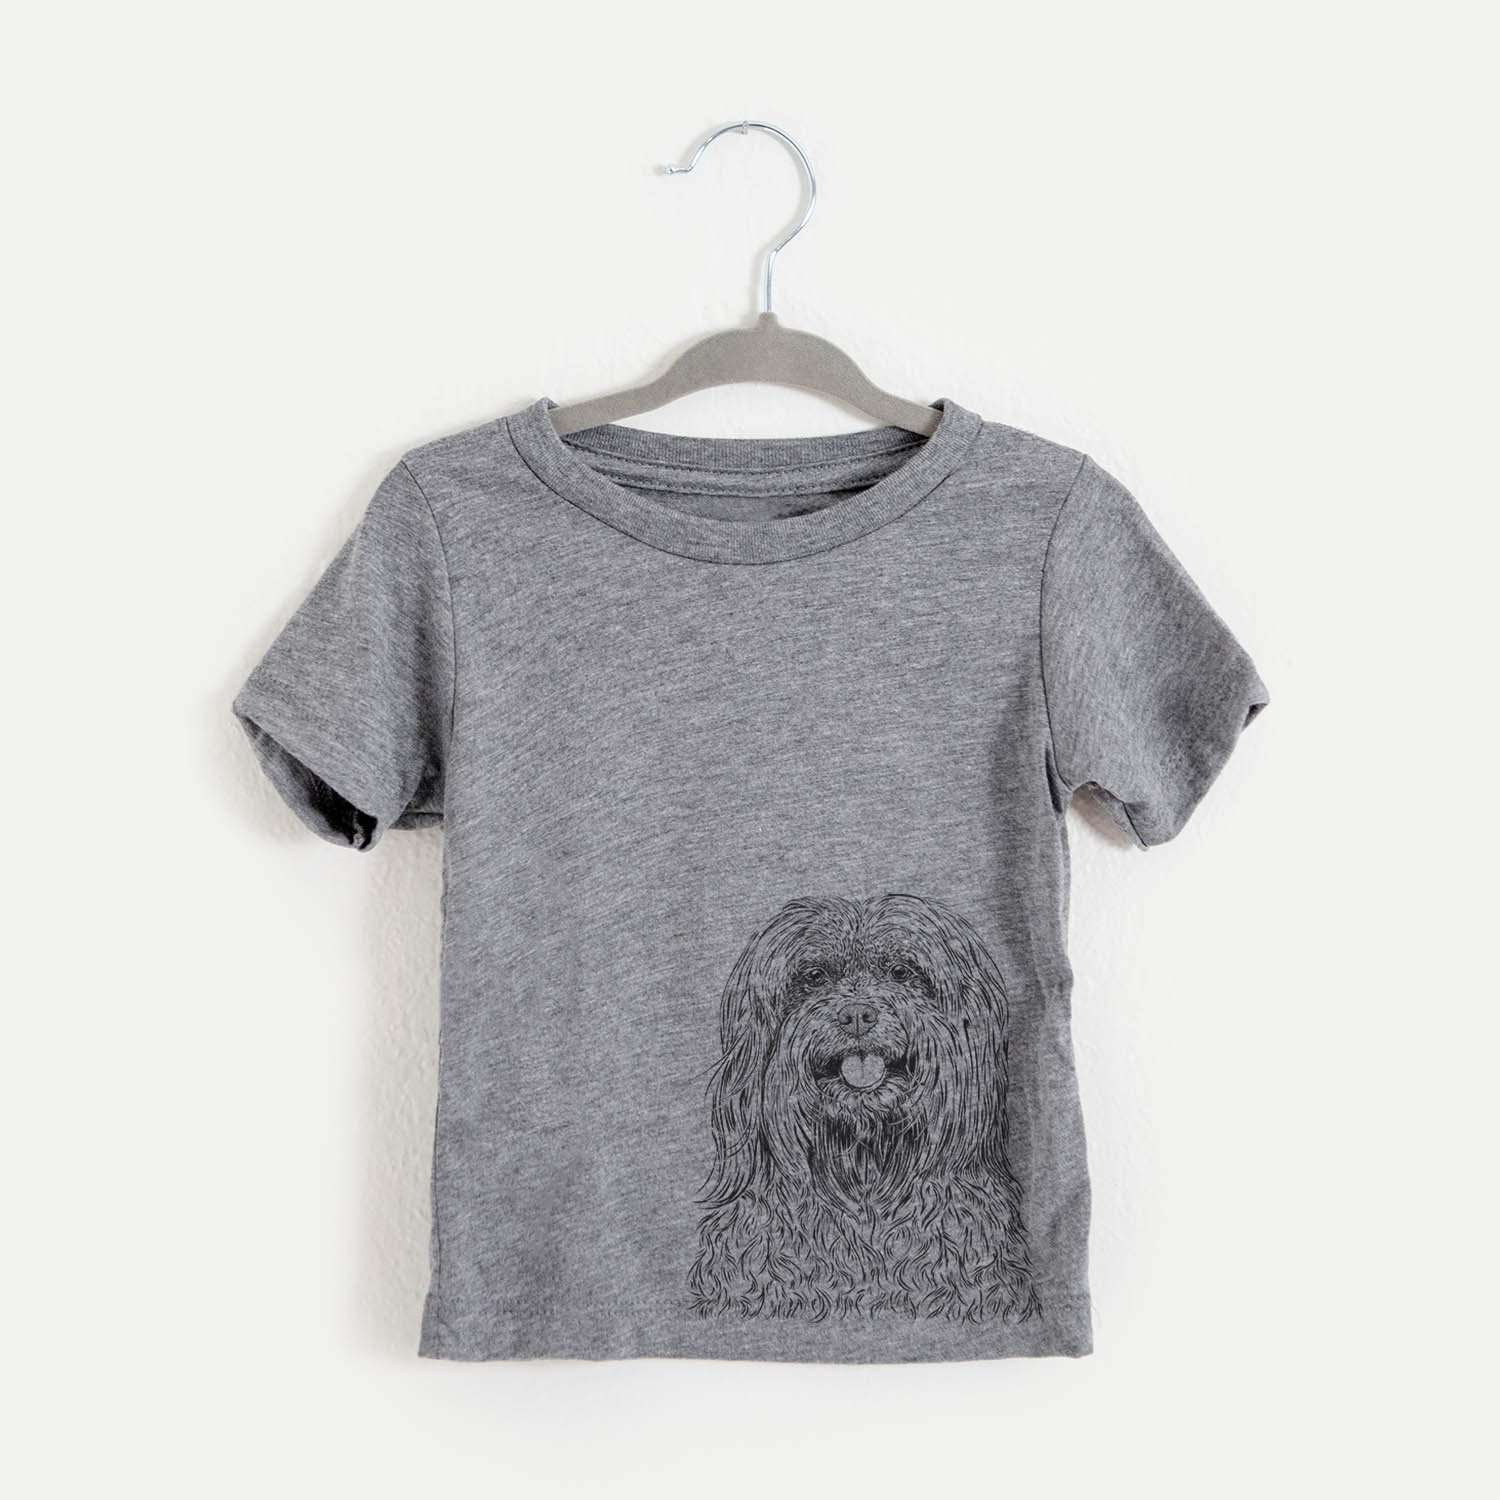 Annie the Mixed Breed - Kids/Youth/Toddler Shirt